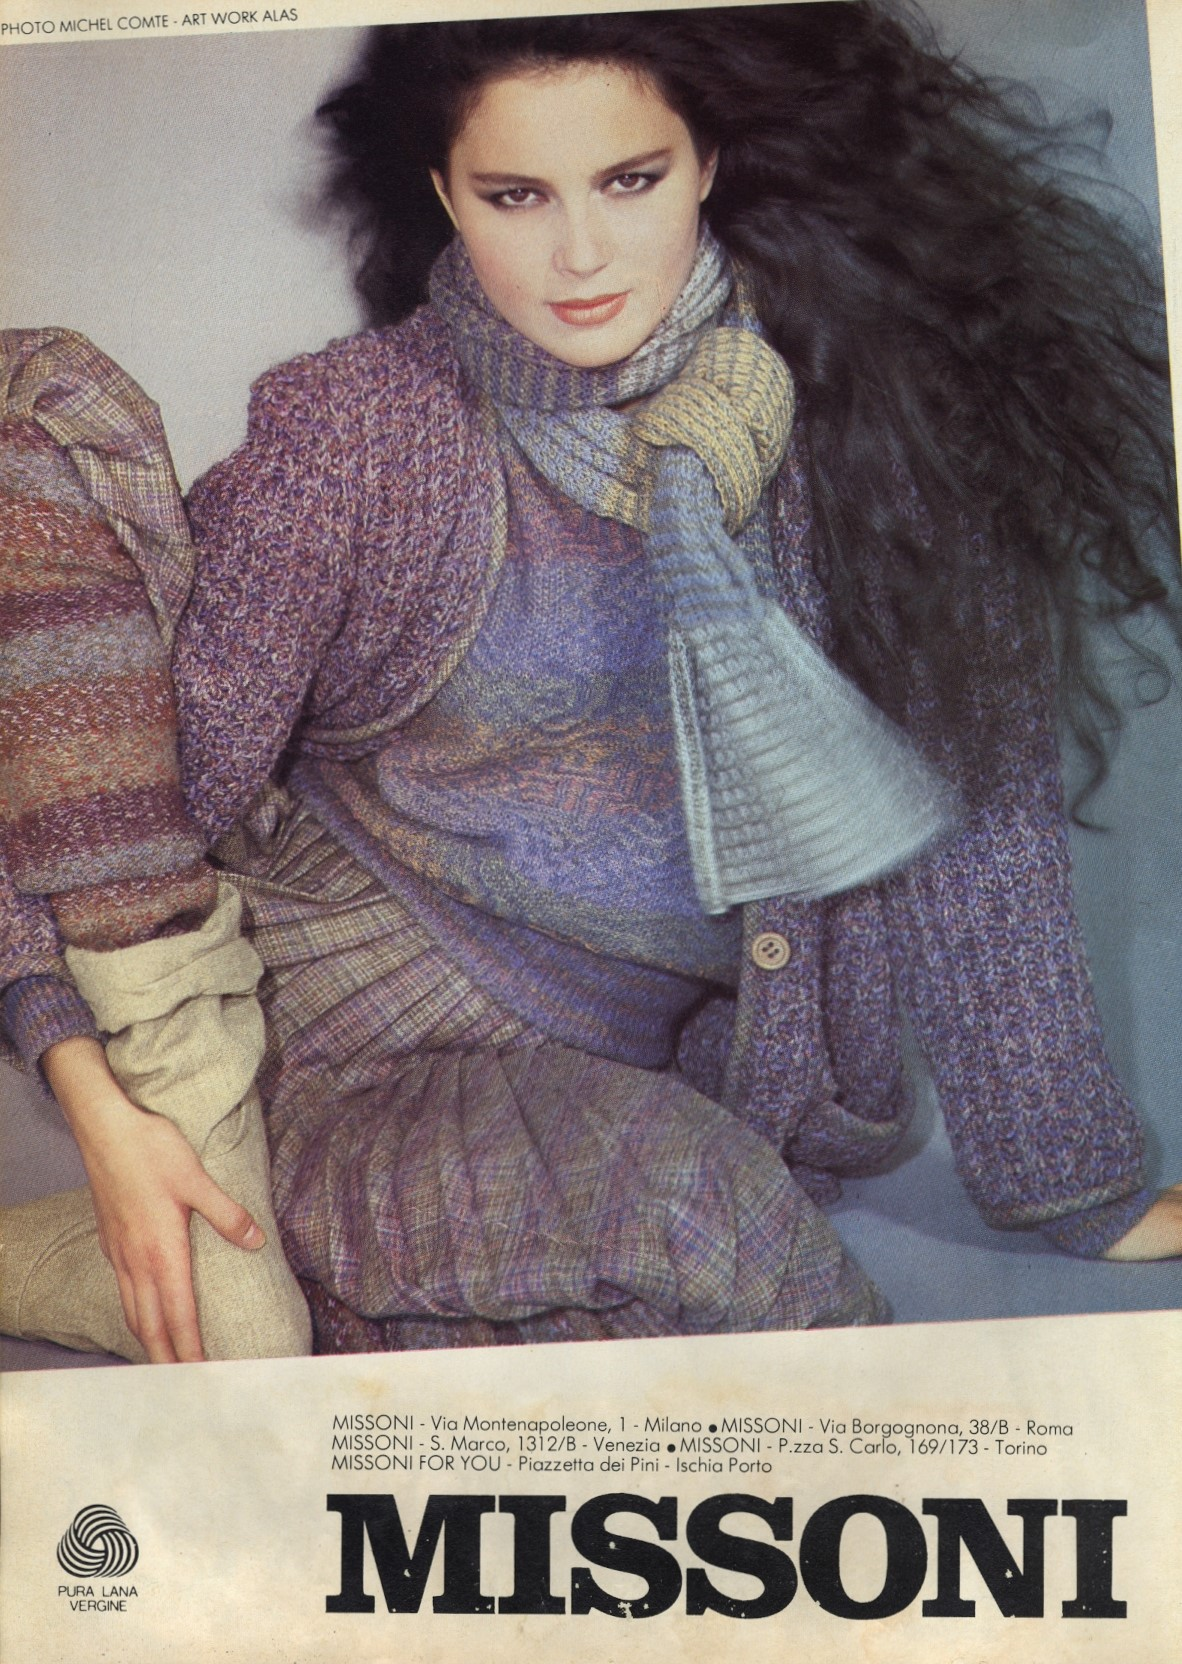 missoni ad campaign photography michel comte cosmopolitan italy october 1981